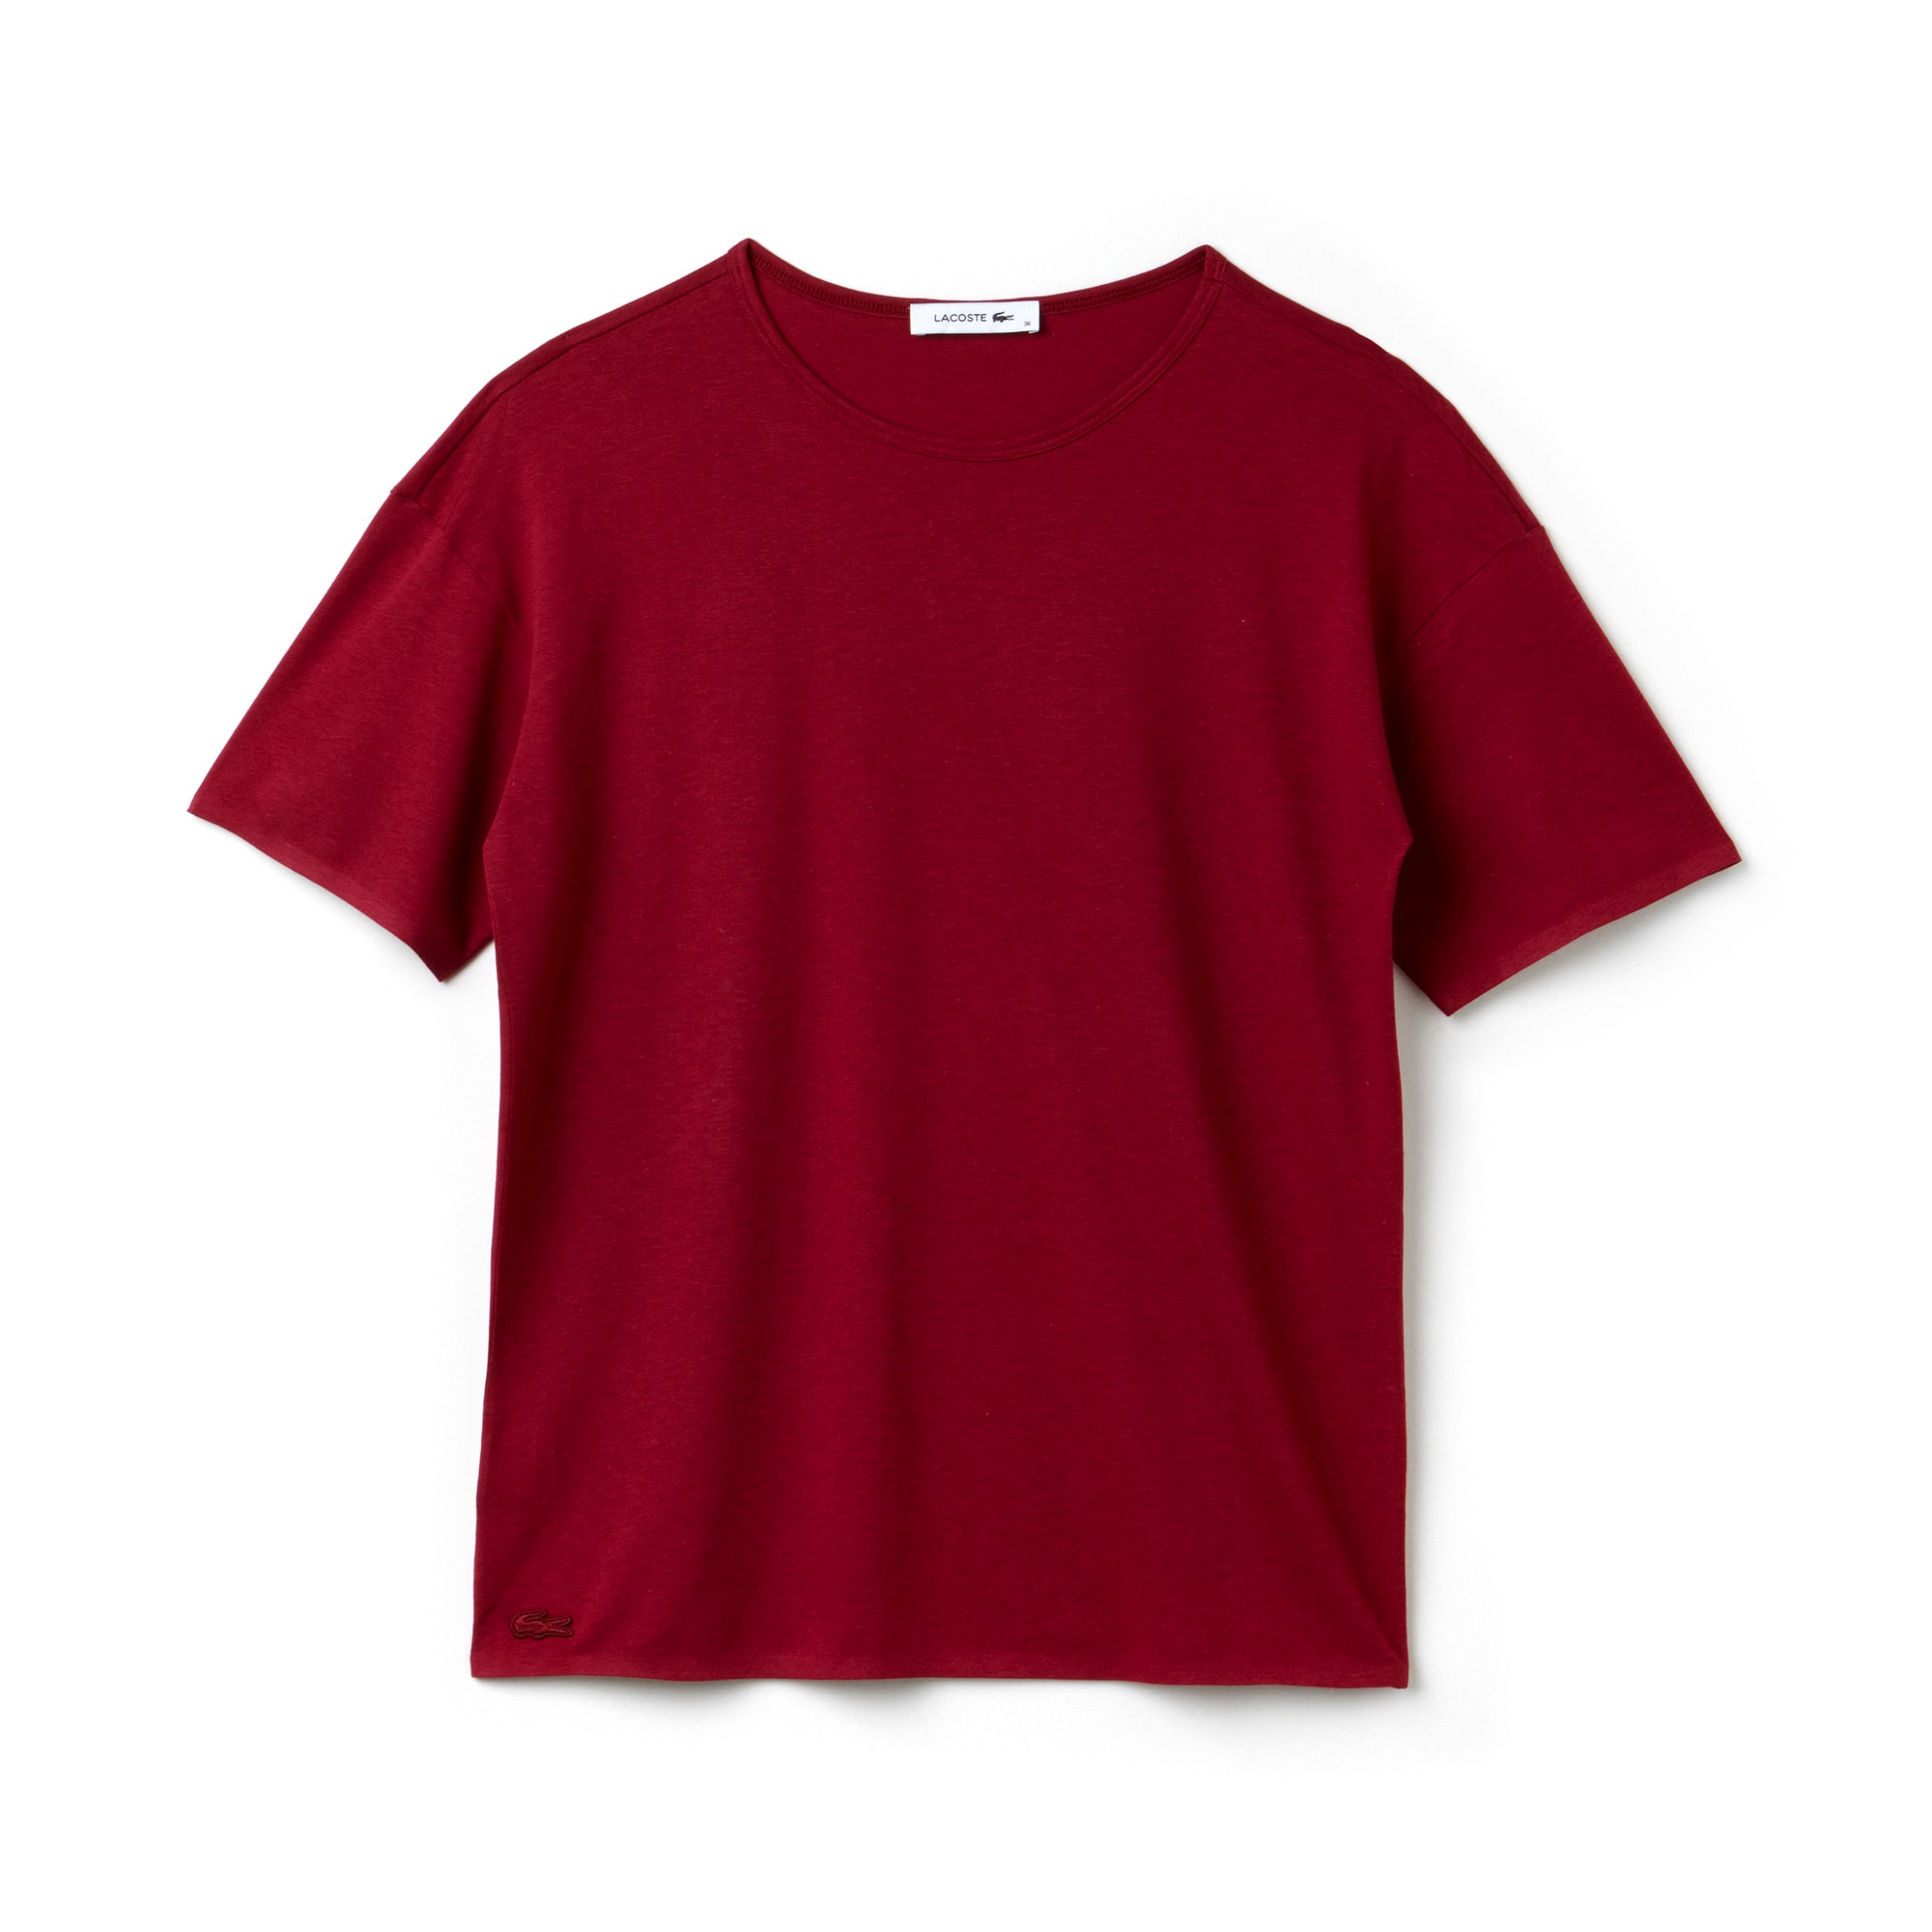 Women's Wide Neck Flowing Jersey T-Shirt